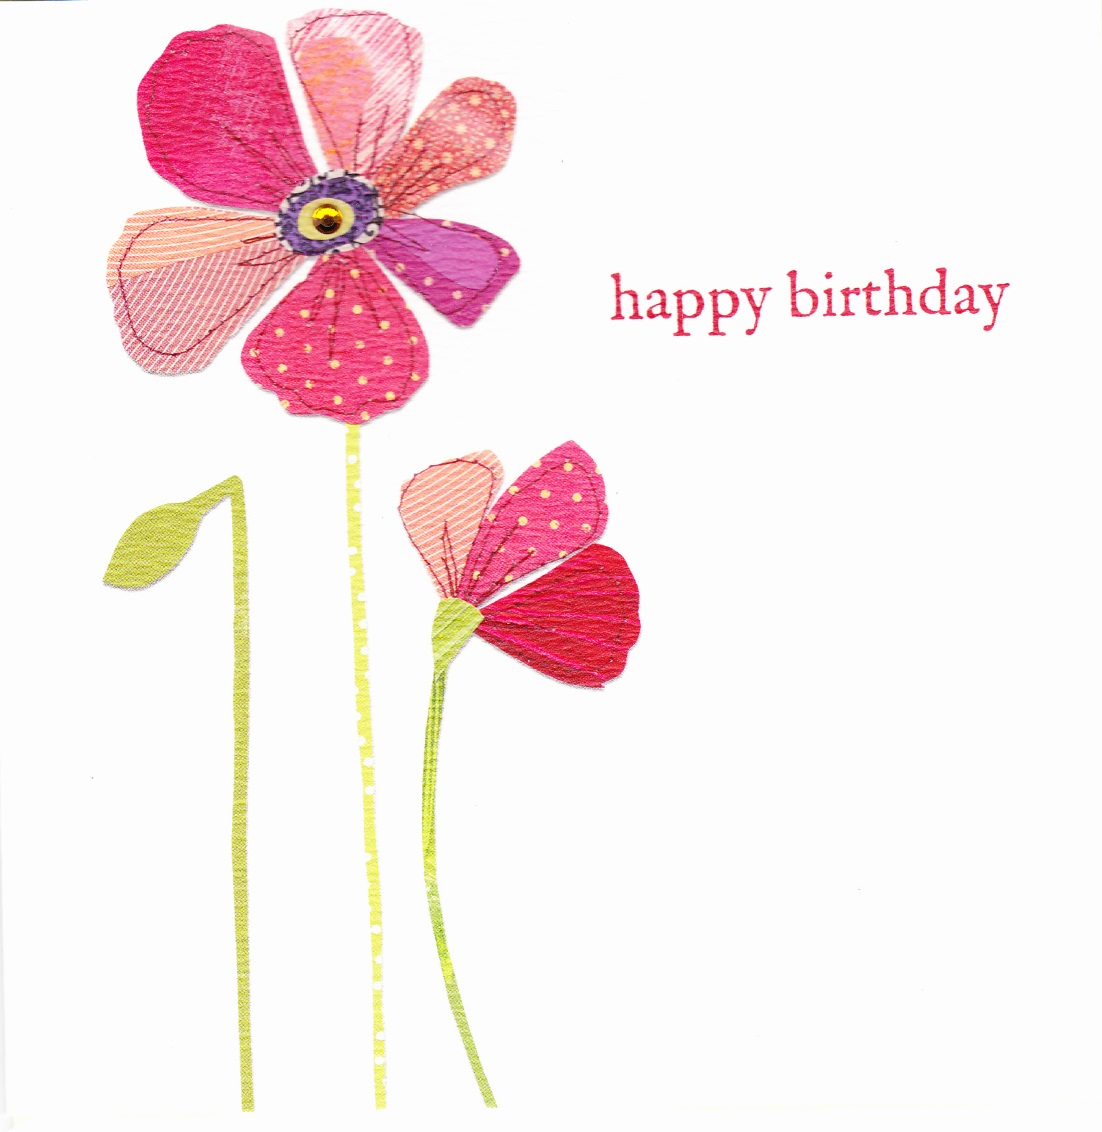 buy red poppies birthday cards for her online karenza paperie